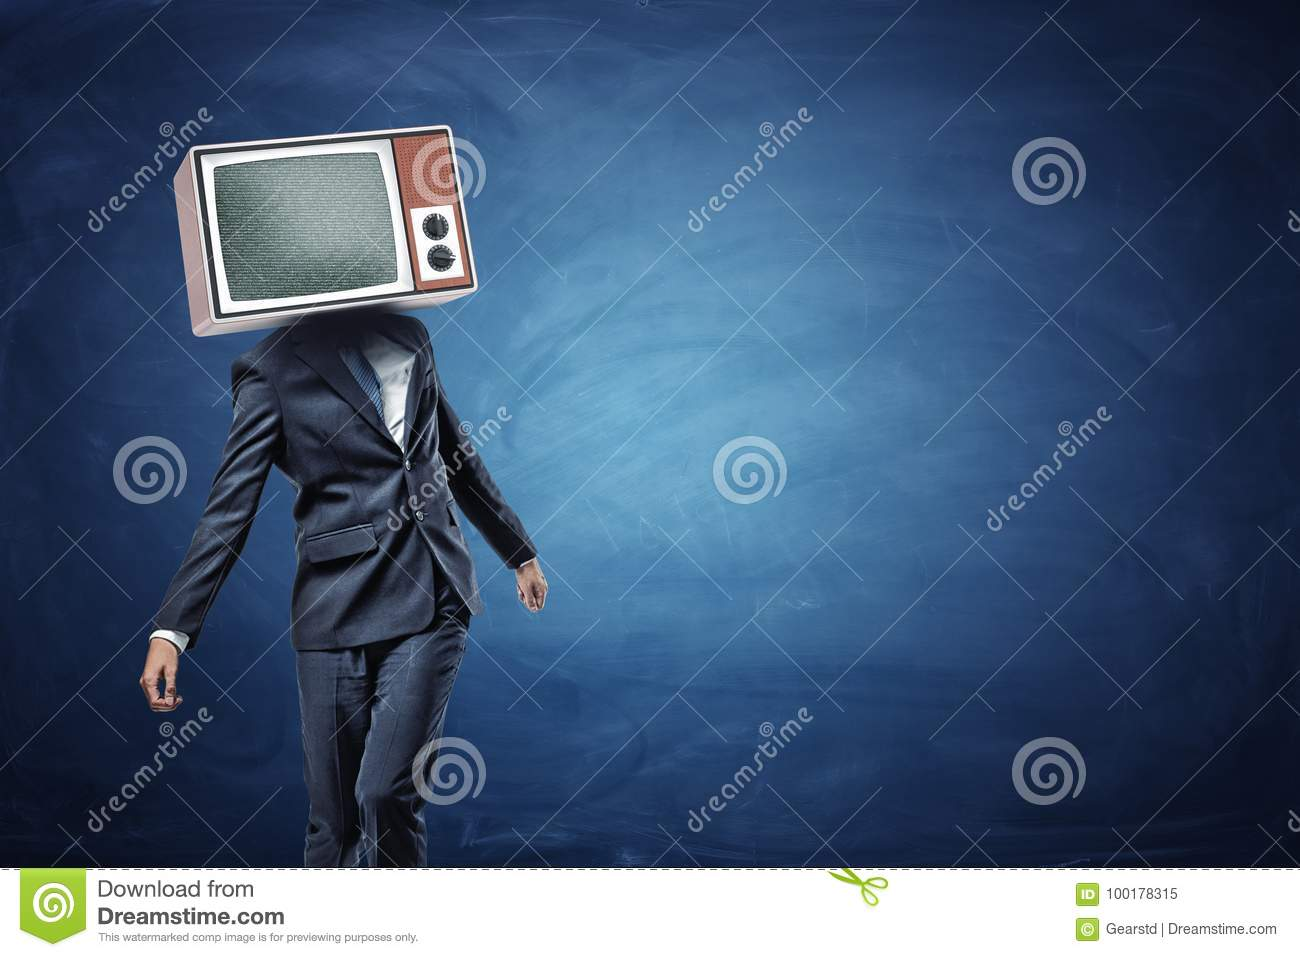 An unsteady businessman standing unevenly with a large retro TV on his head showing gray noise.